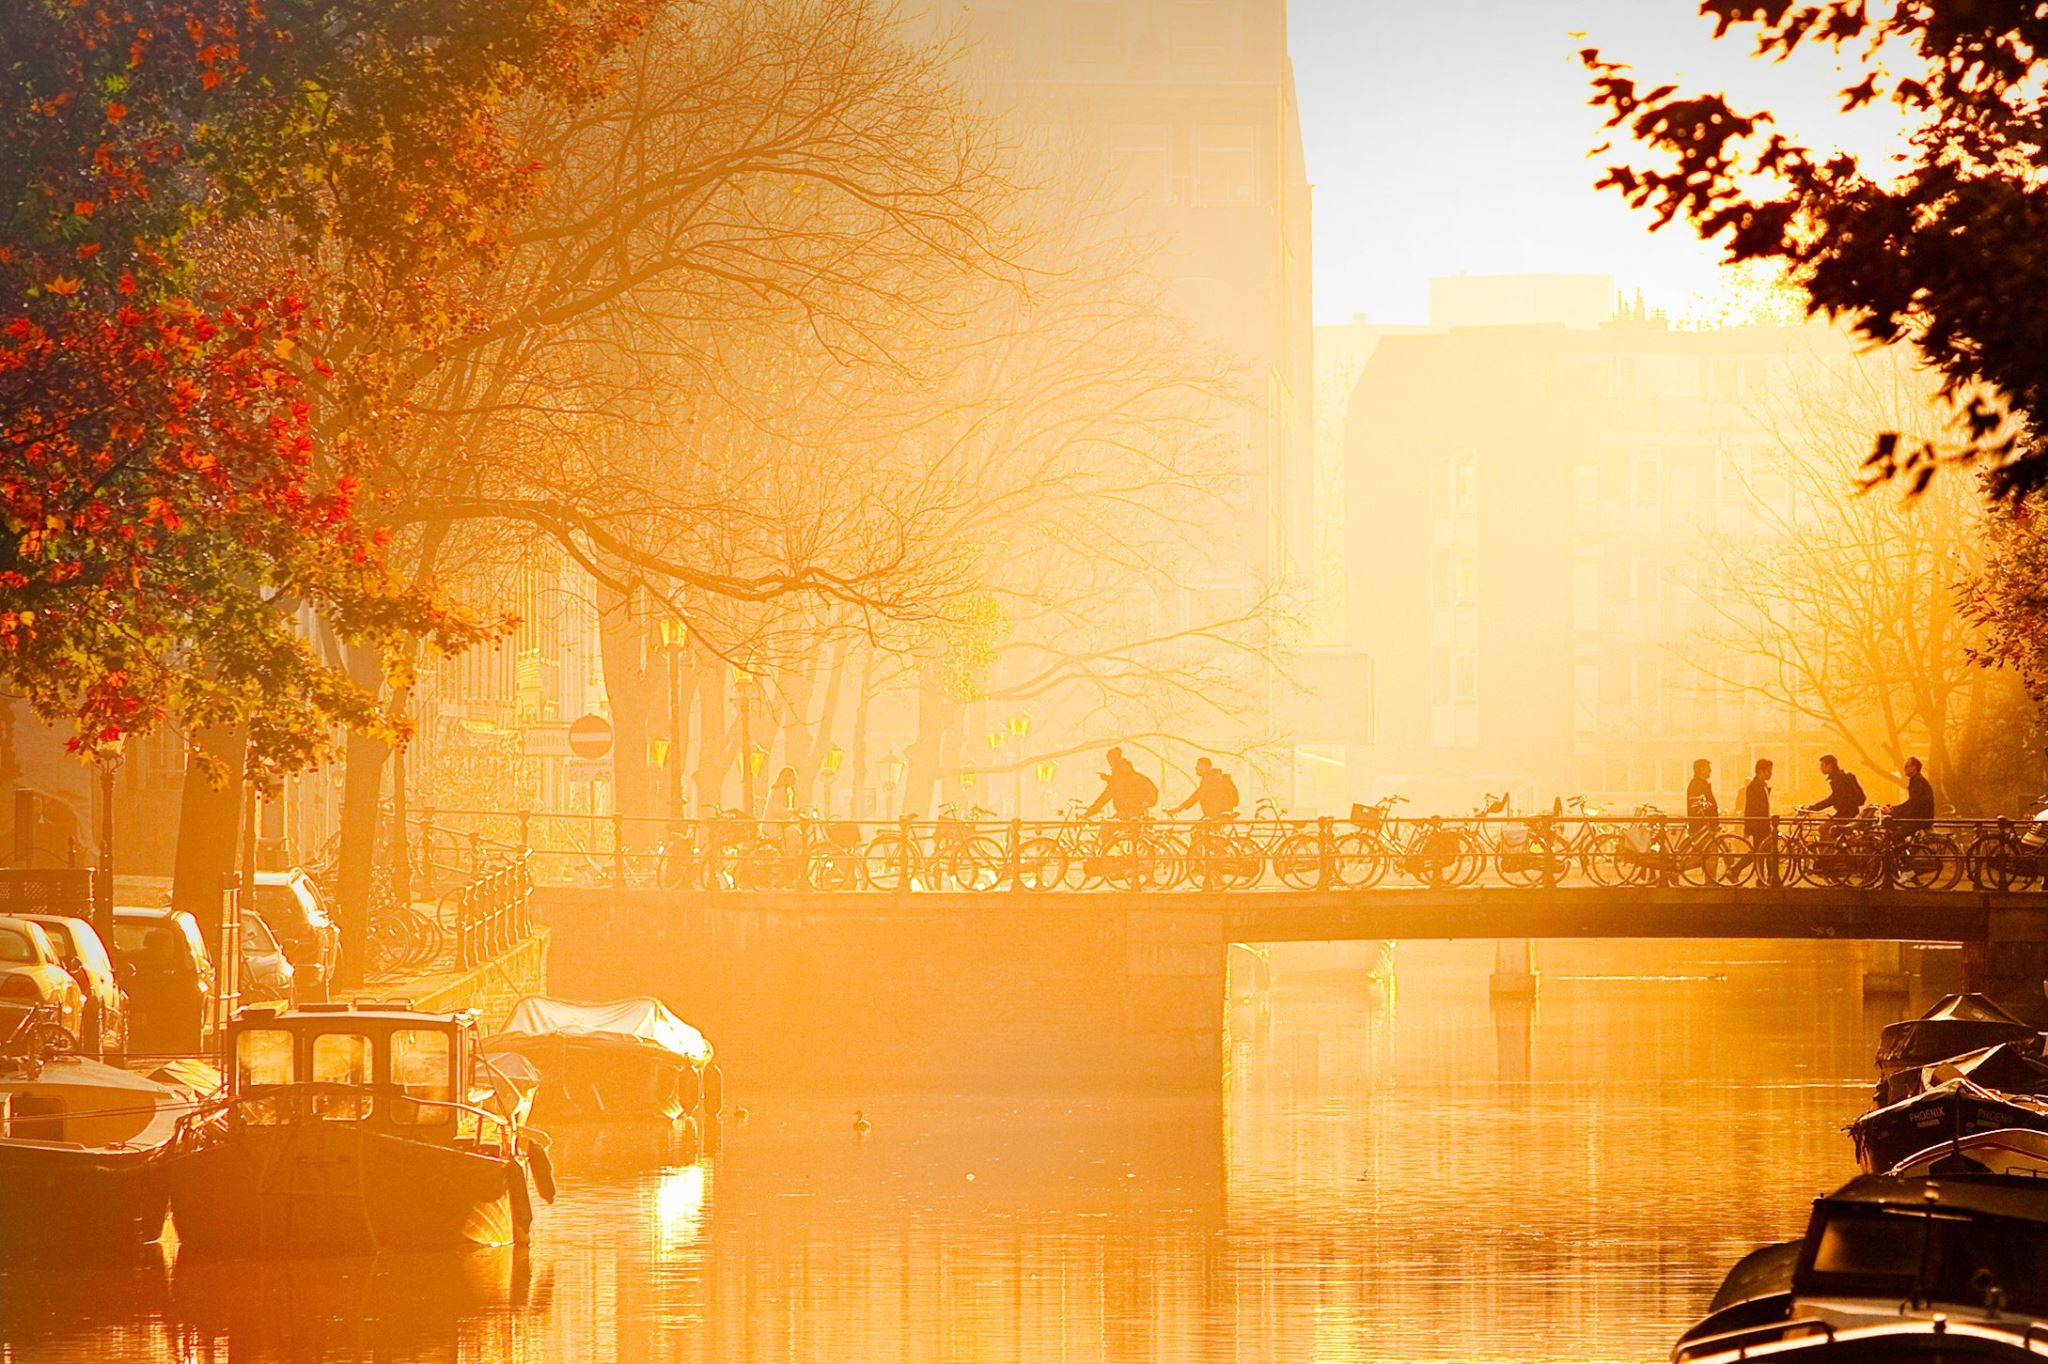 Amsterdam Becomes Attractive Hotspot for Startups